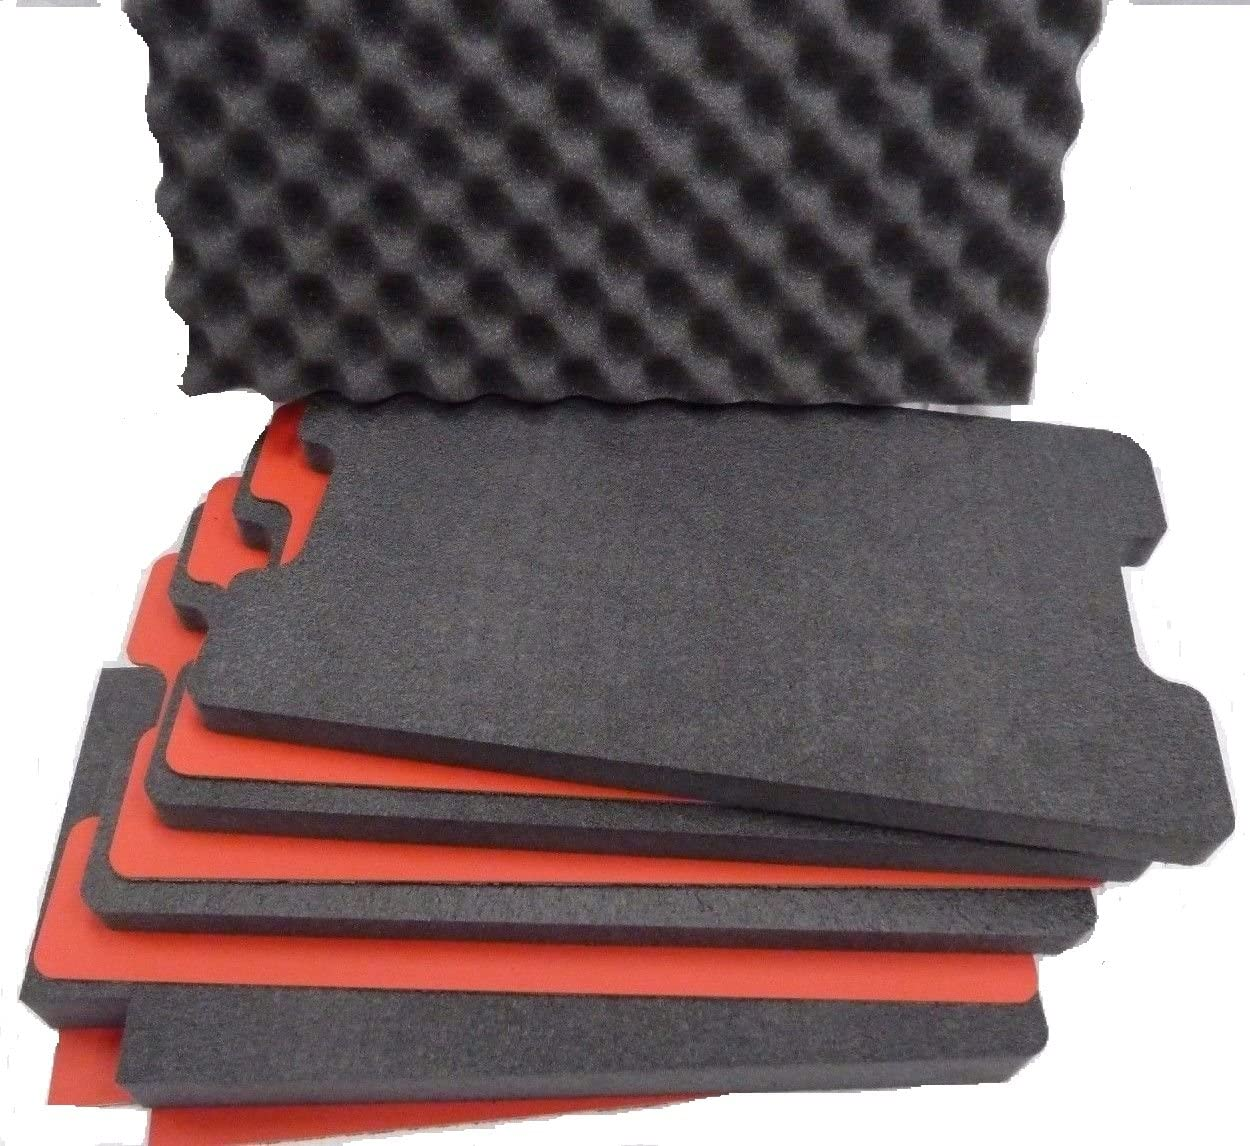 Custom Tool Control Foam Inserts ABS Plastic for Pelican 1510. Turn Your 1510 into a Custom Tool case.